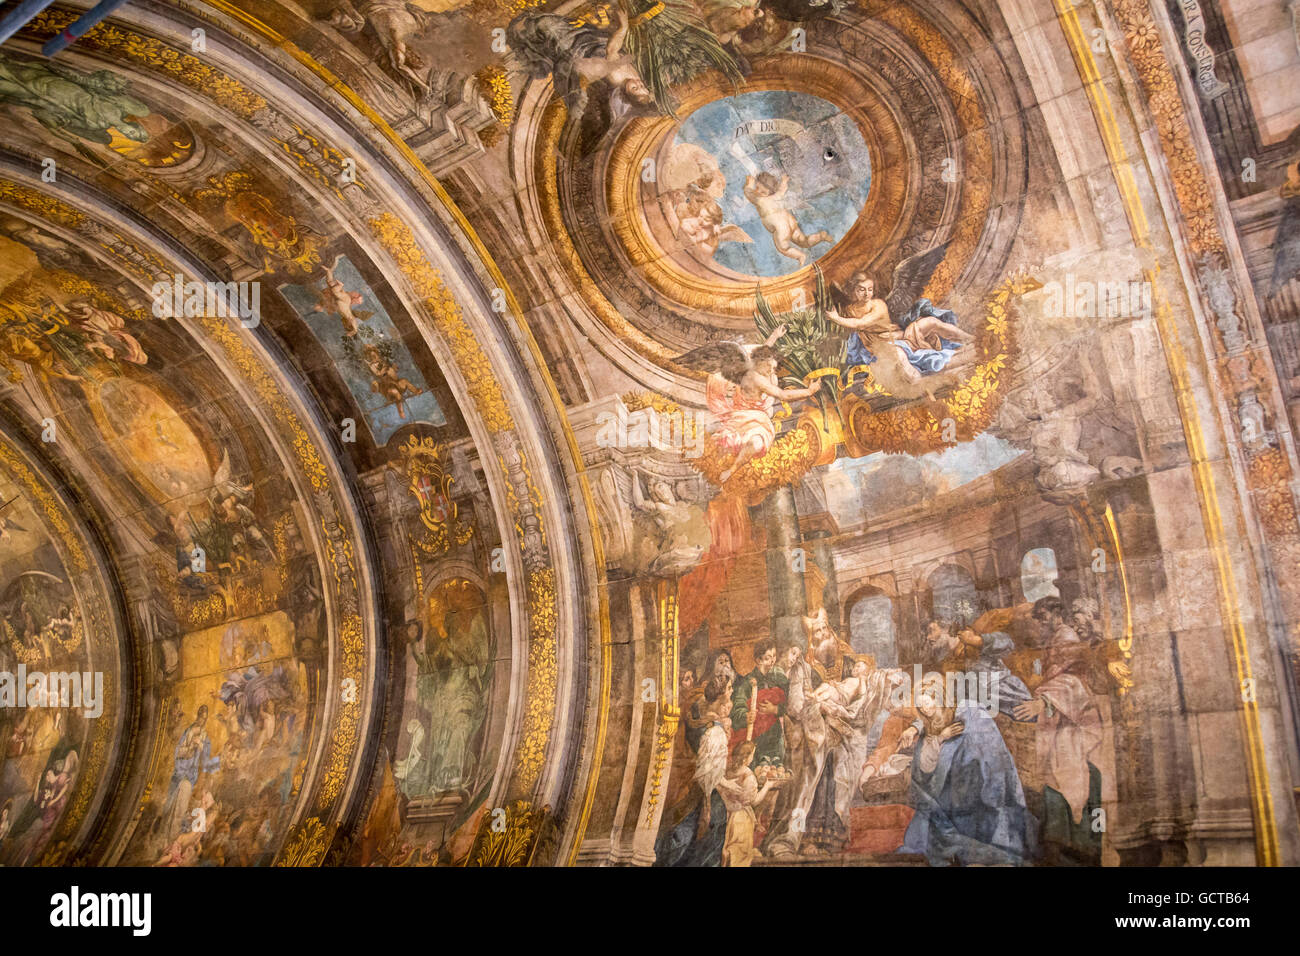 Ornate painted ceiling of the Our Lady Of Victories Chapel, Valletta, Malta - Stock Image